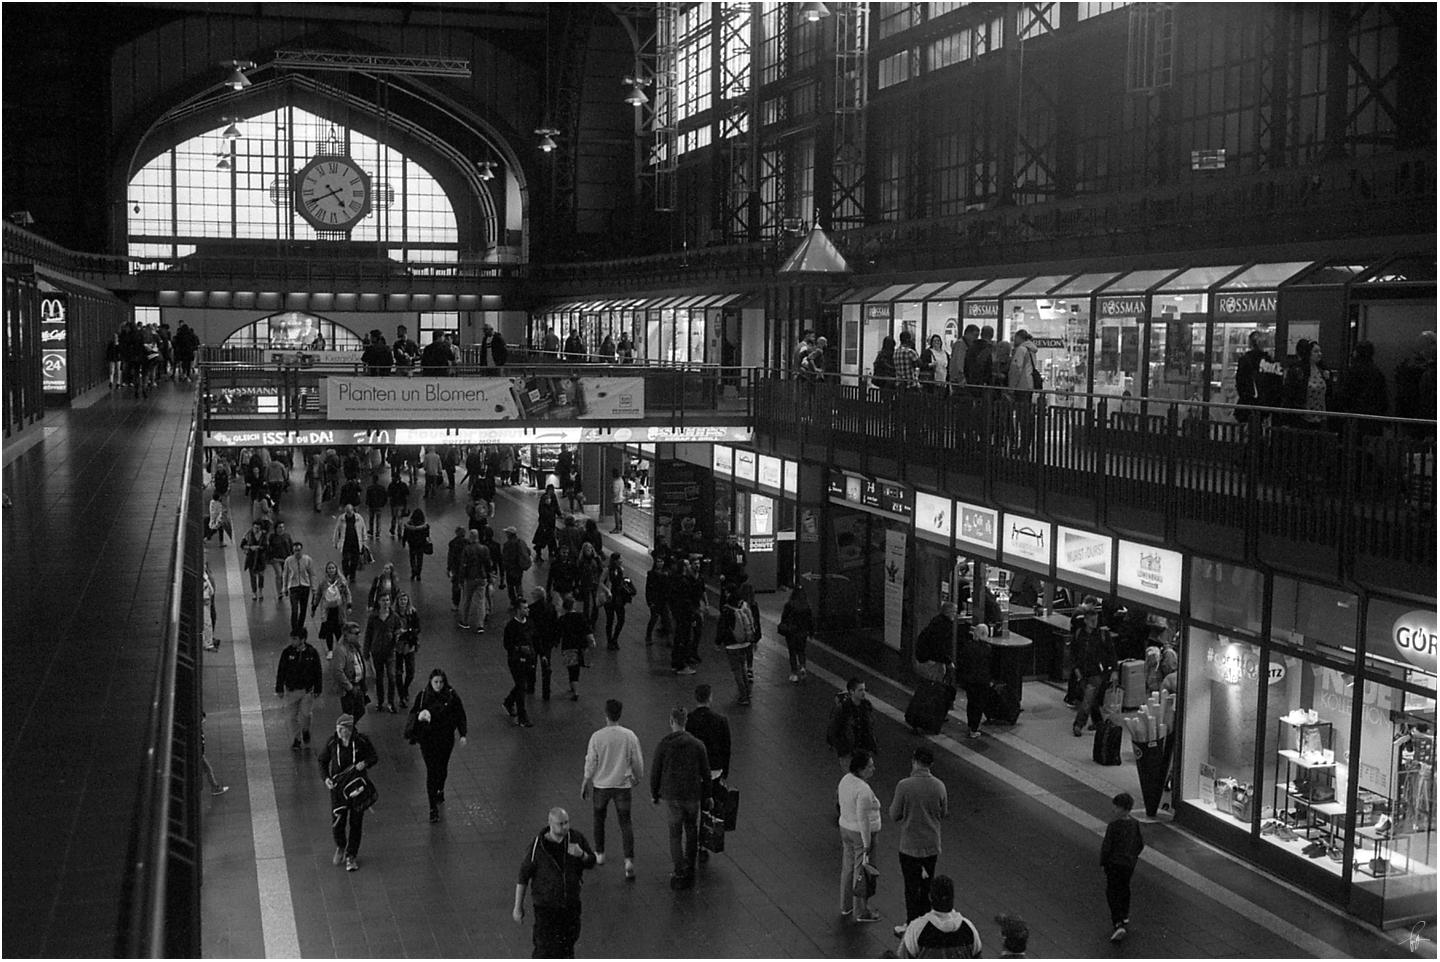 Central Station by karlomat